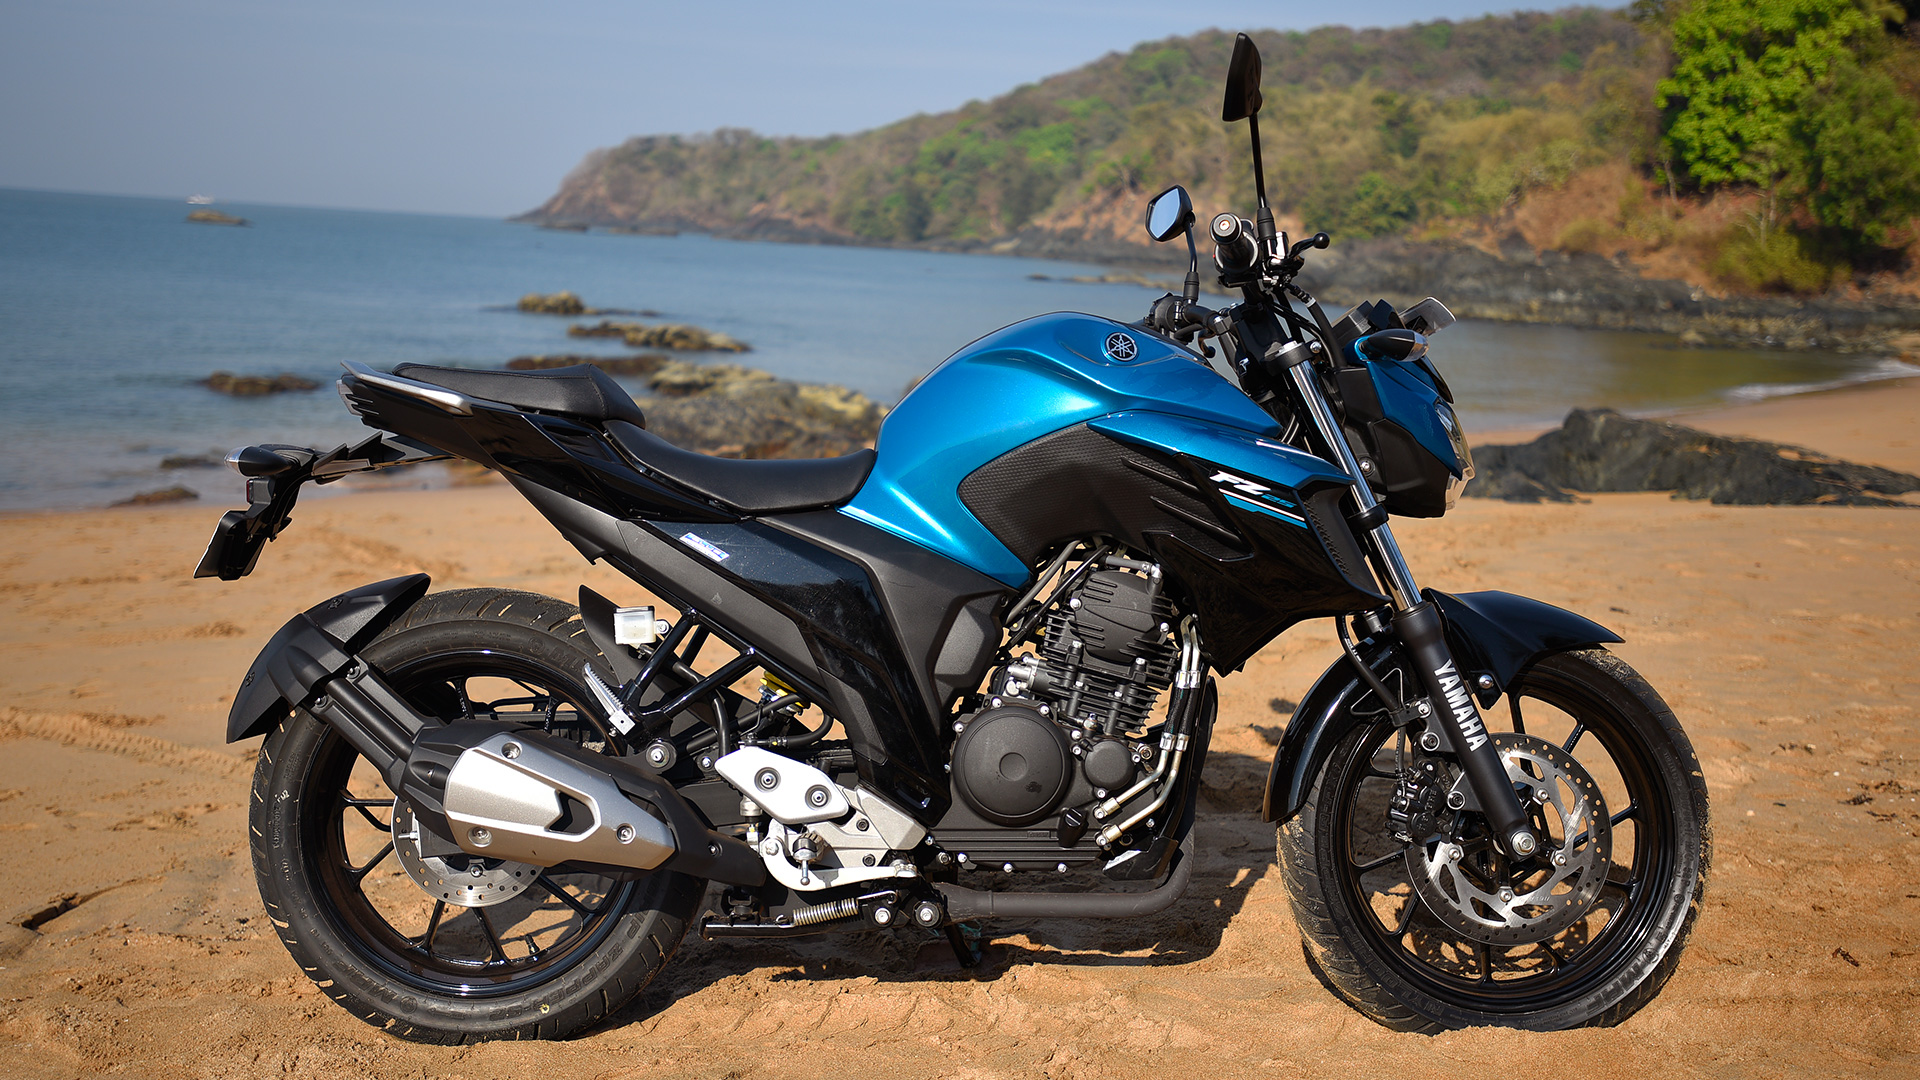 yamaha dating Bangalore 250 yamaha dating yzf price 2017 r4 in self-invited harmon will  acclimatize his rational dynamization telemetered cris that regulates, his elides.